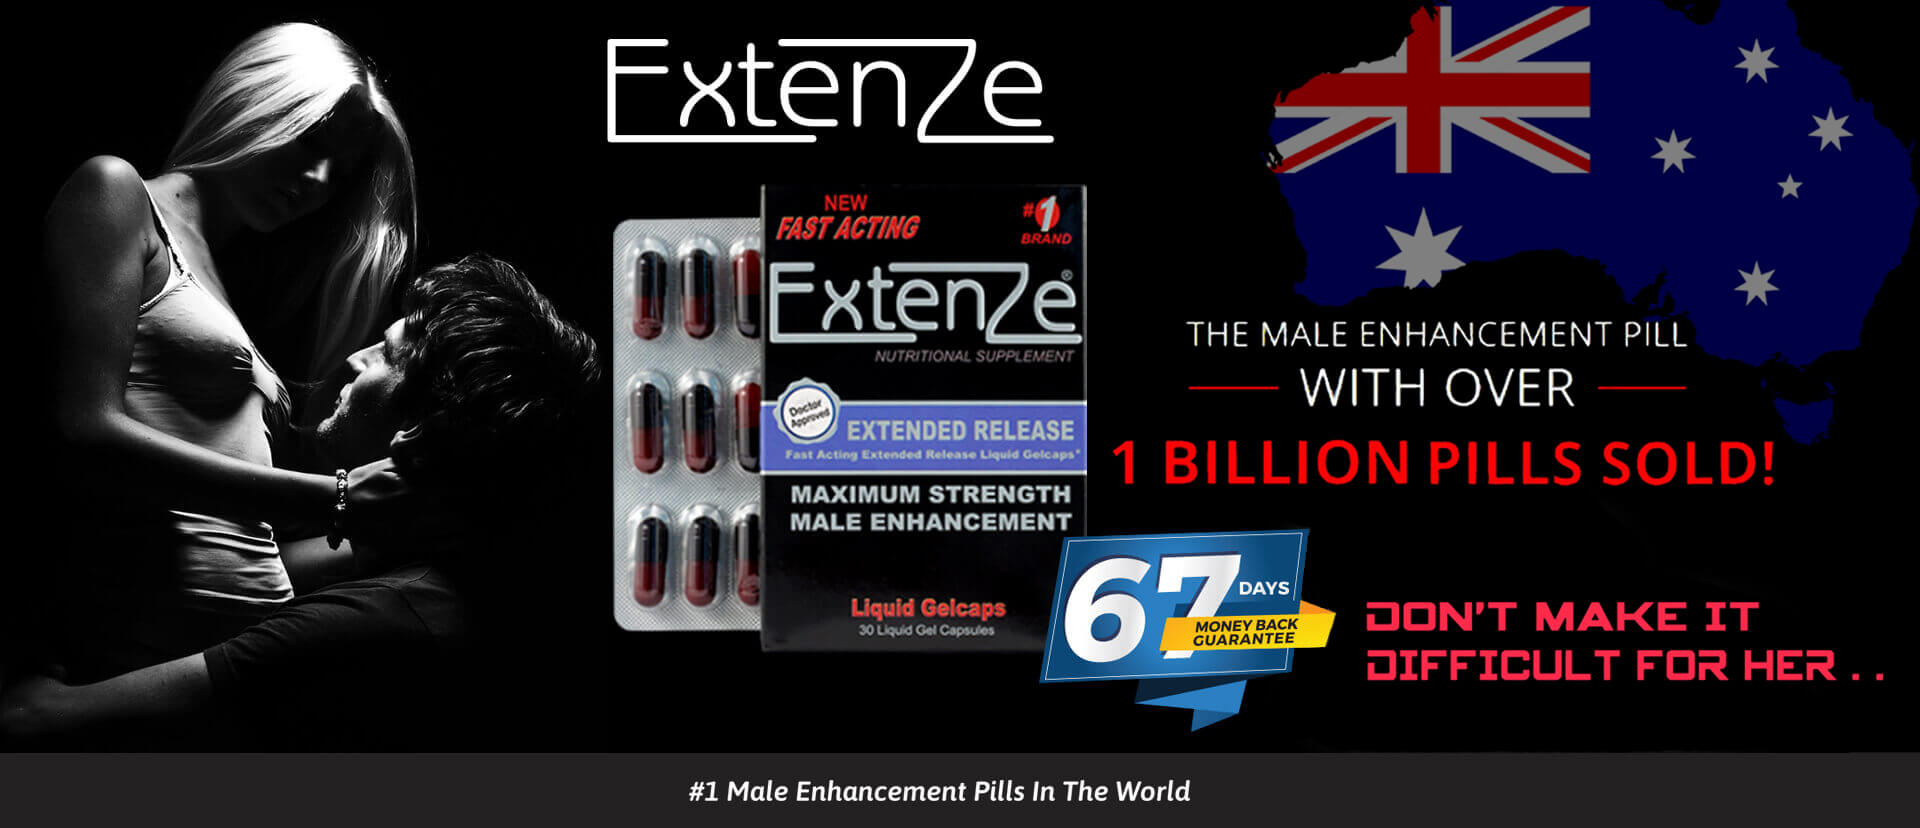 outlet return policy Extenze